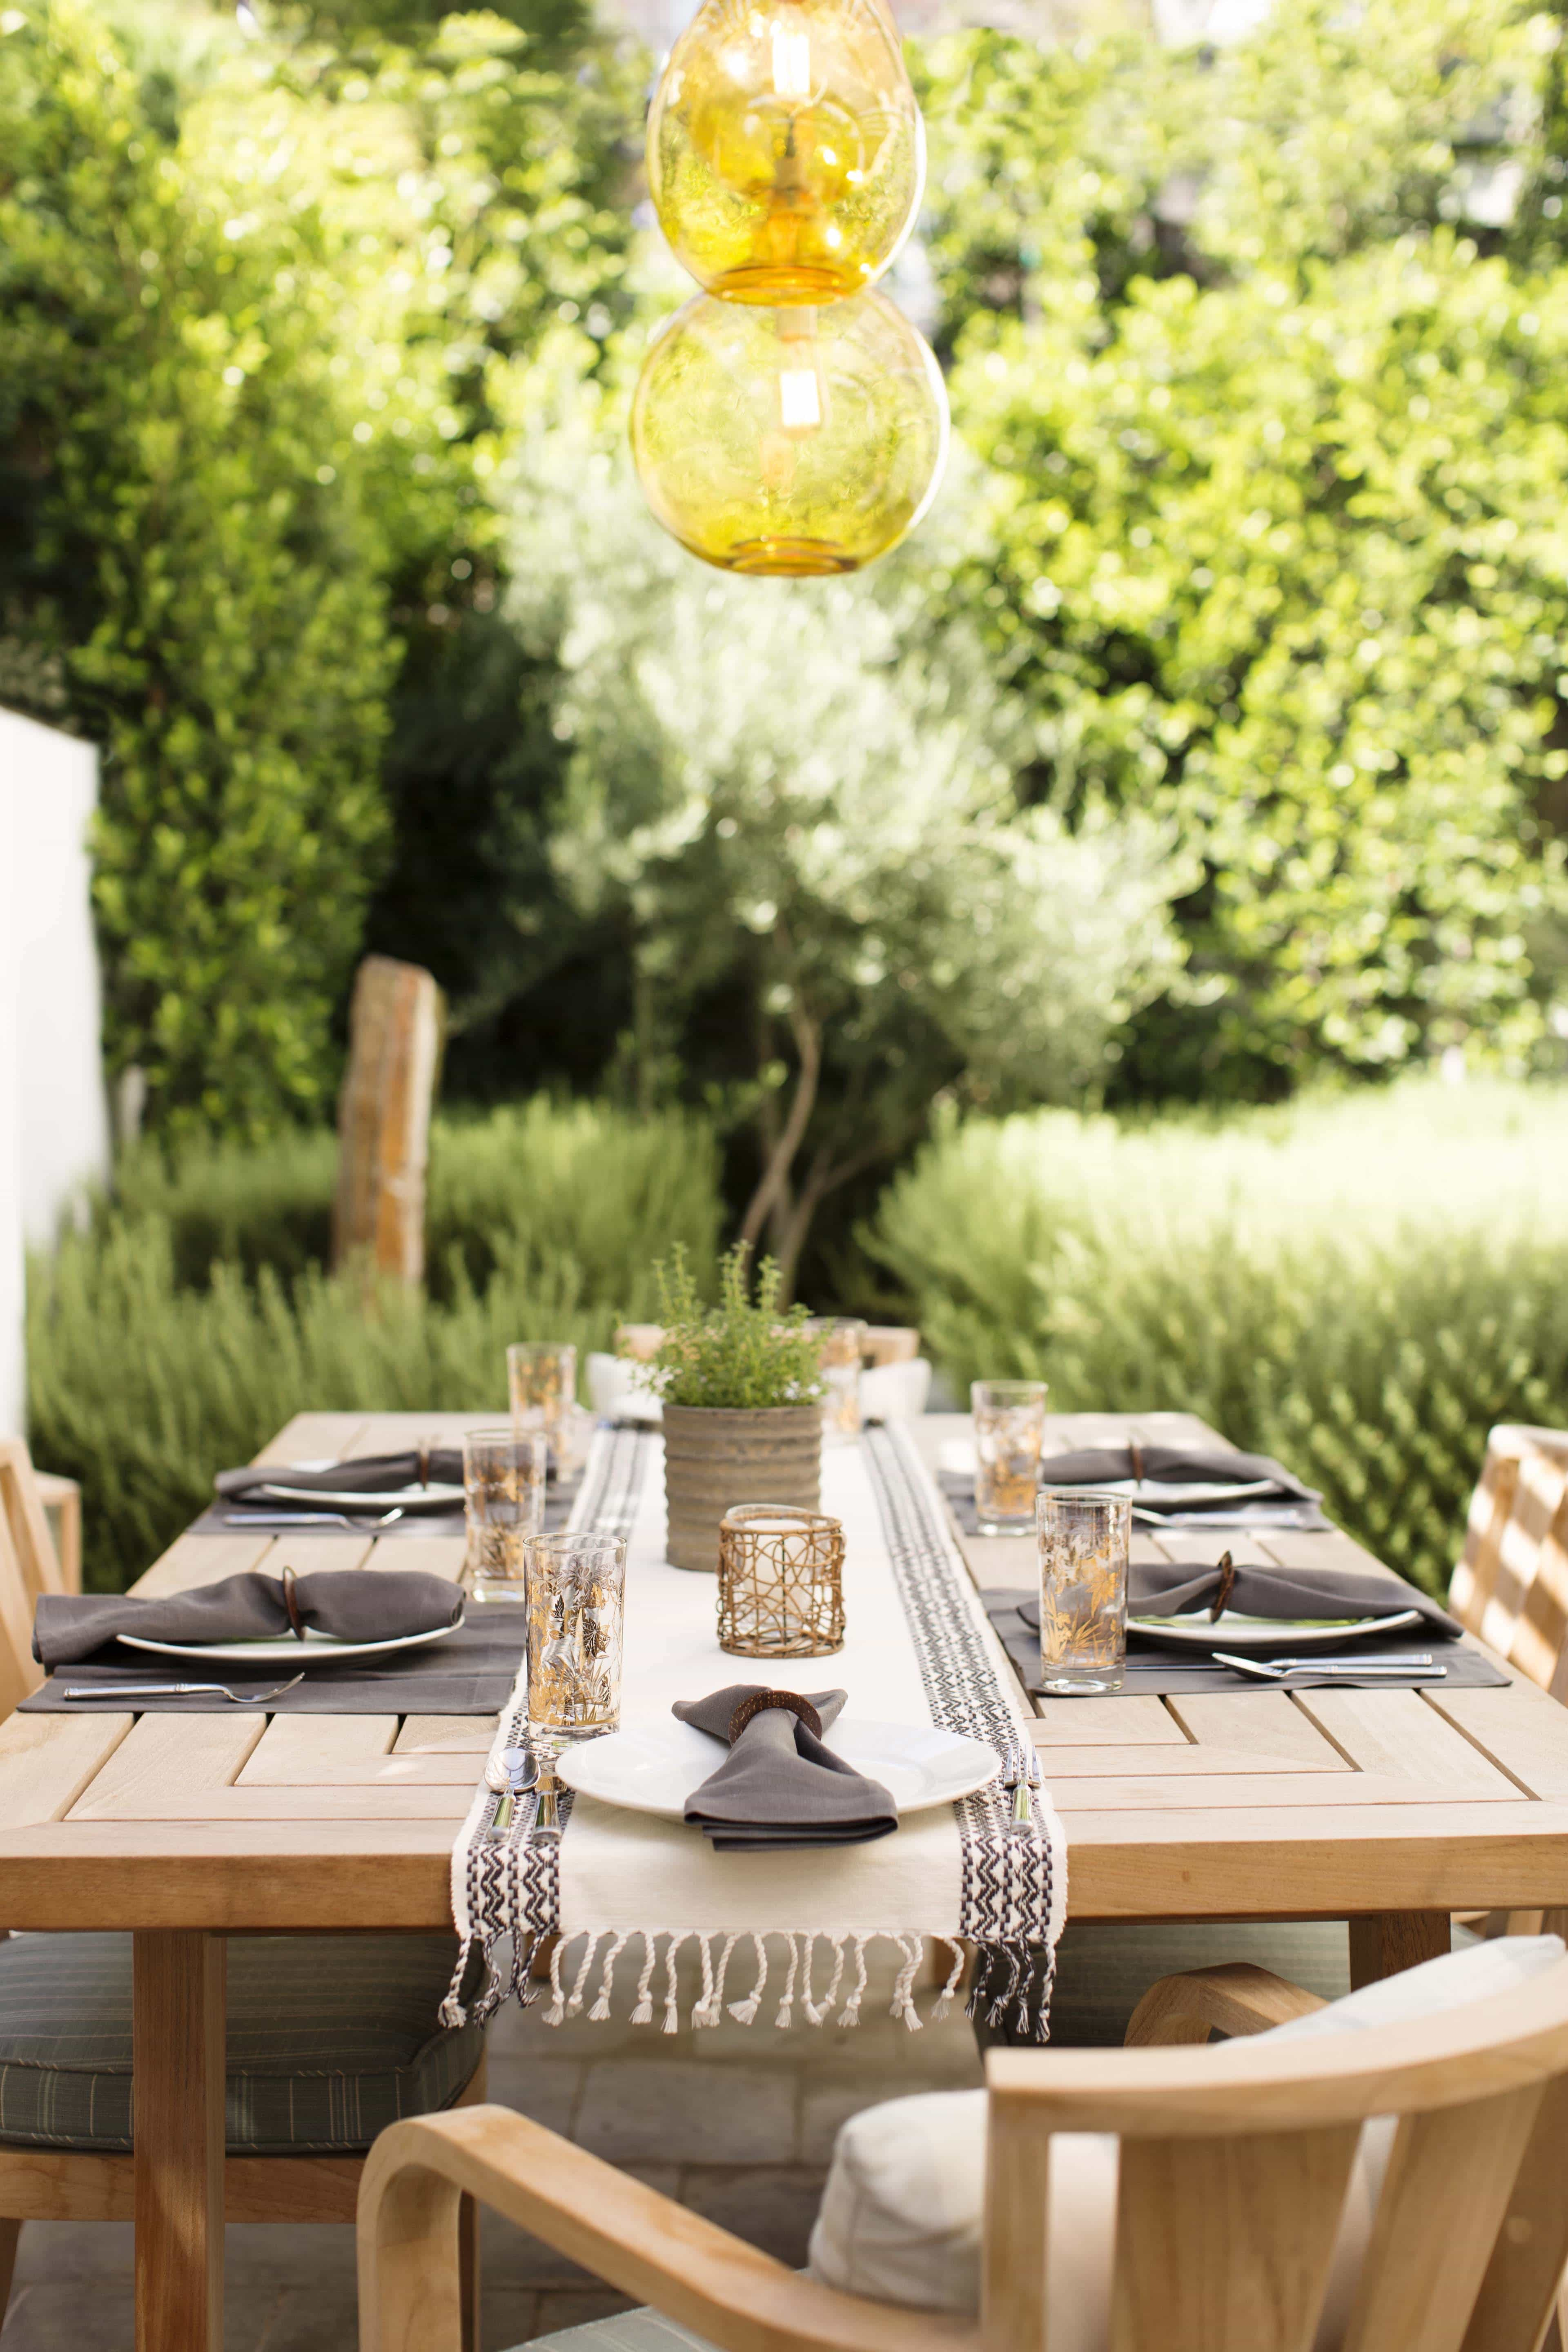 Romantic Outdoor Dining Table With Table Runner (Image 7 of 8)